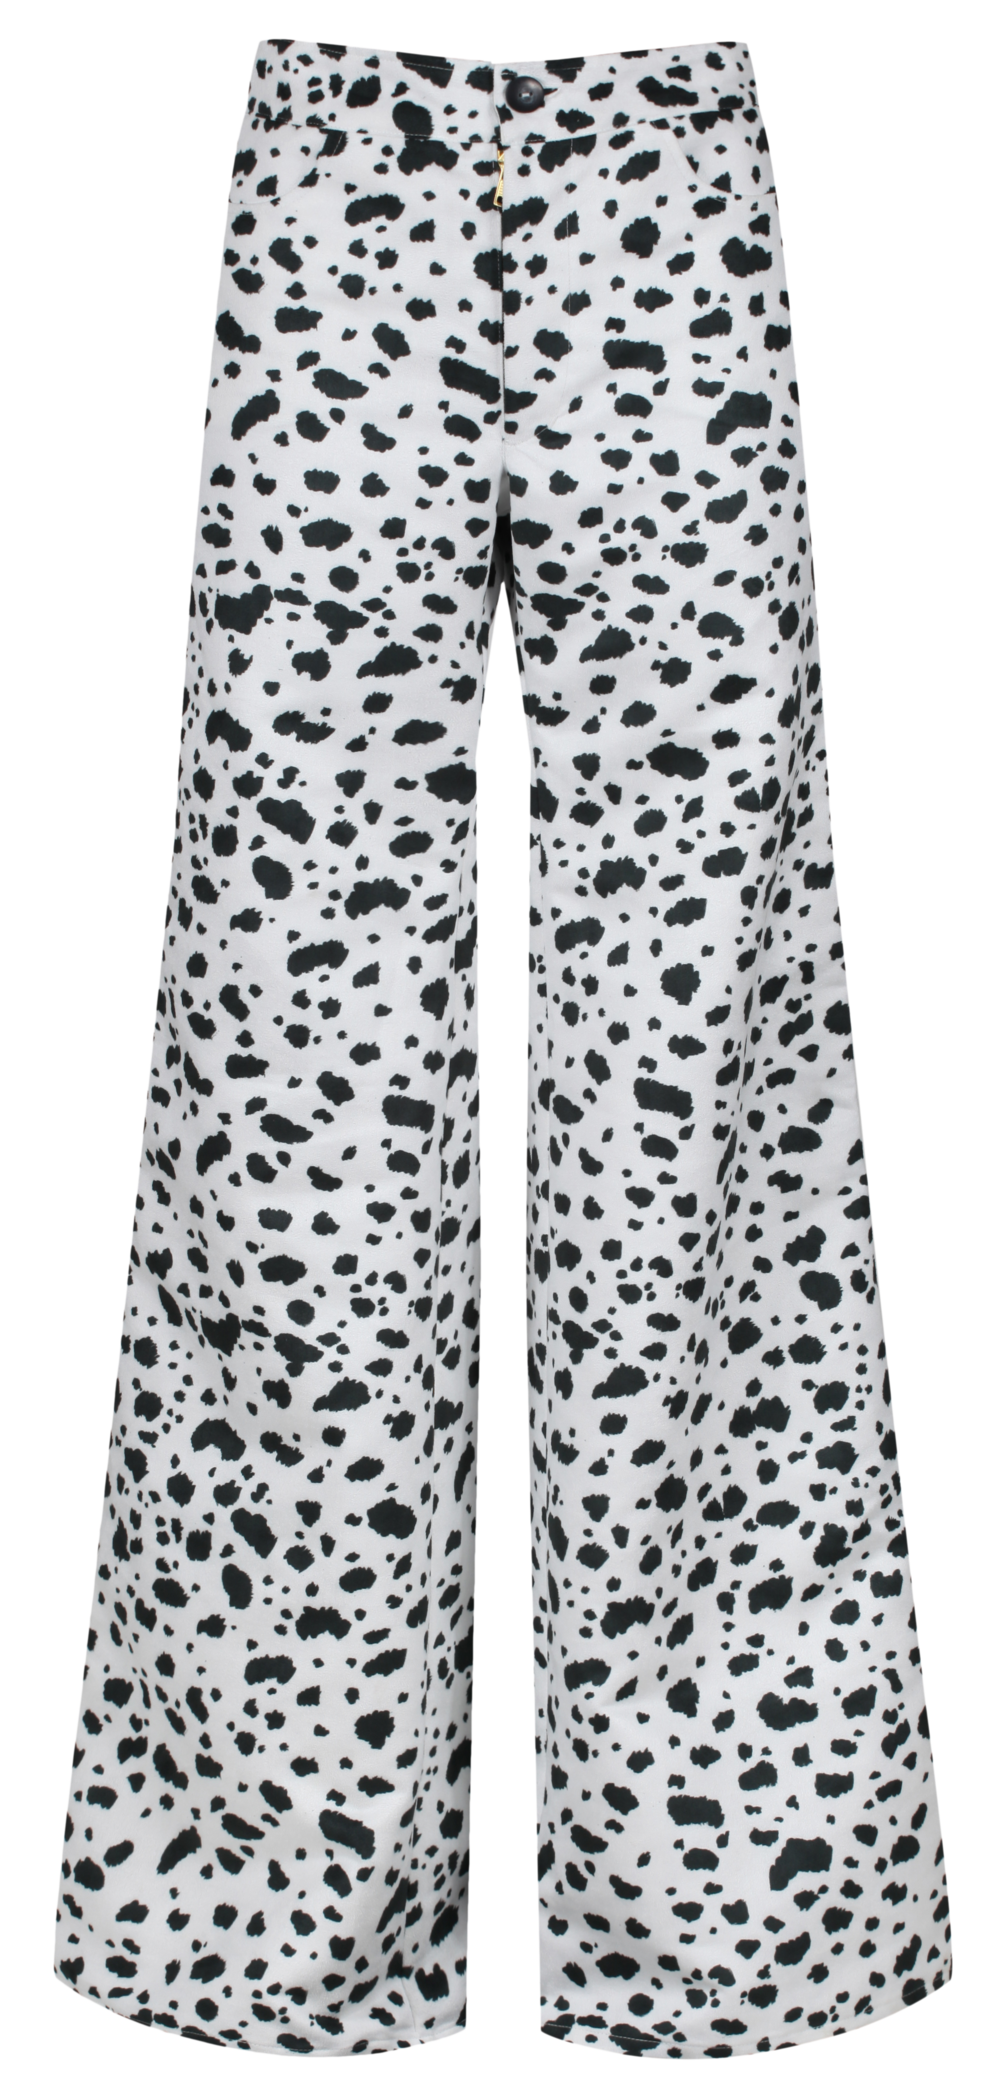 LUNA PRINT TROUSERS - PONGO - SHOP NOW